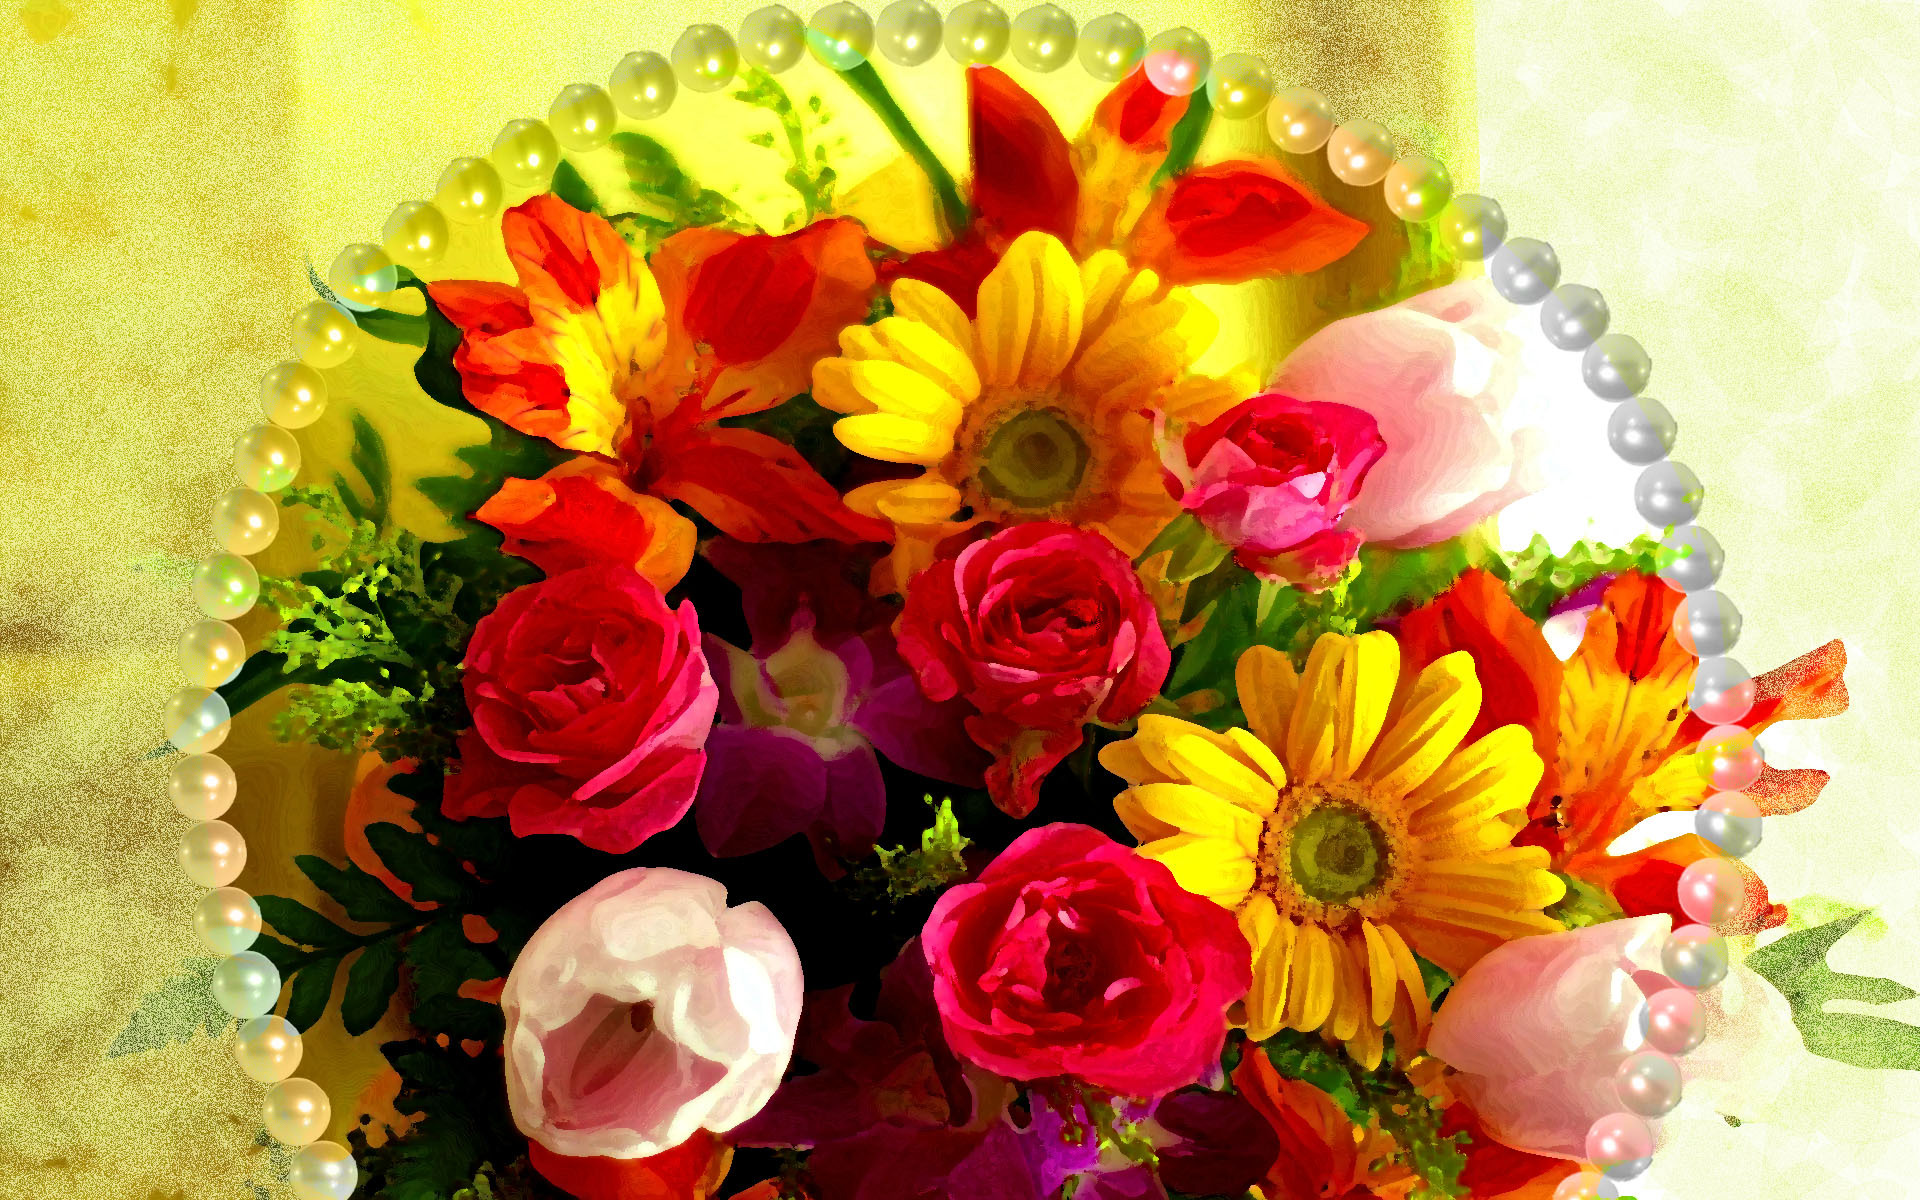 Beautiful flowers most beautiful flowers beautiful flowers images beautiful flowers most beautiful flowers beautiful flowers images beautiful flower bouquet beautiful izmirmasajfo Image collections